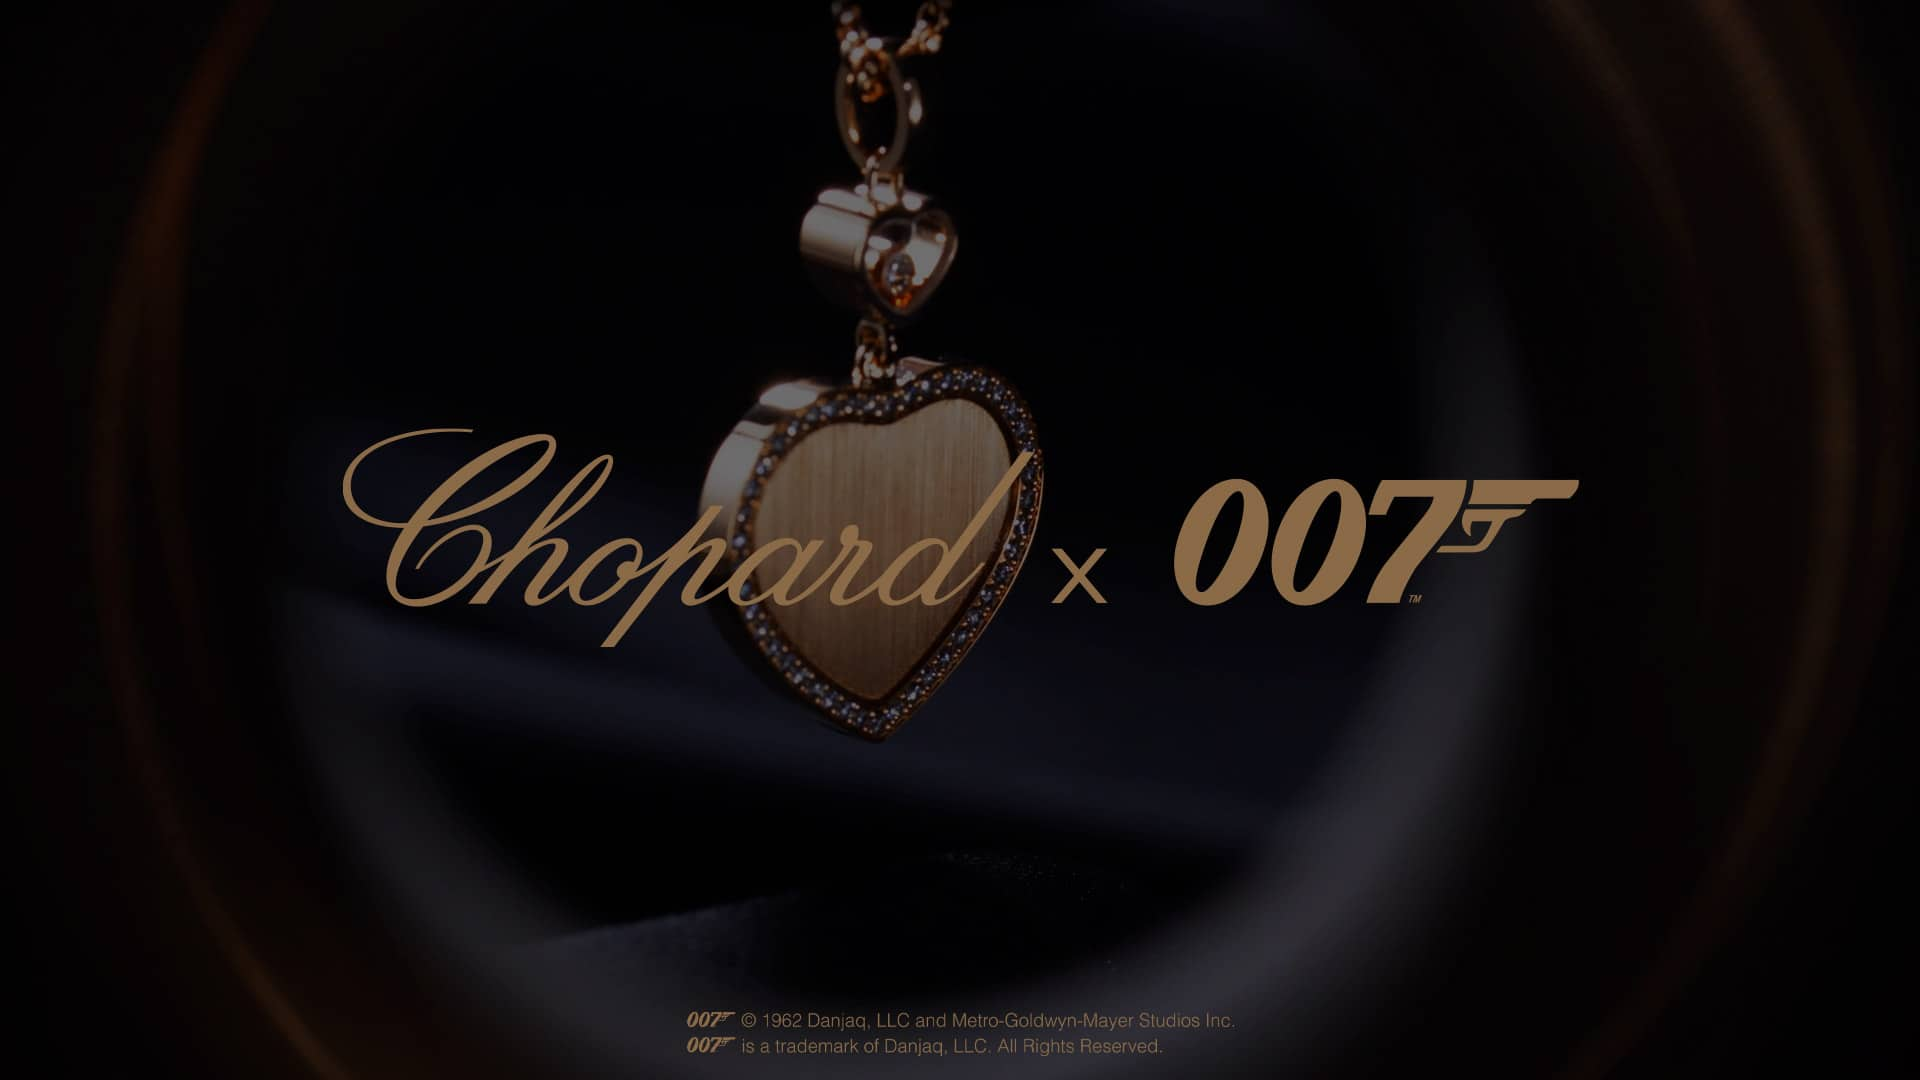 Chopard 007 Happy Hearts – Golden Hearts 2